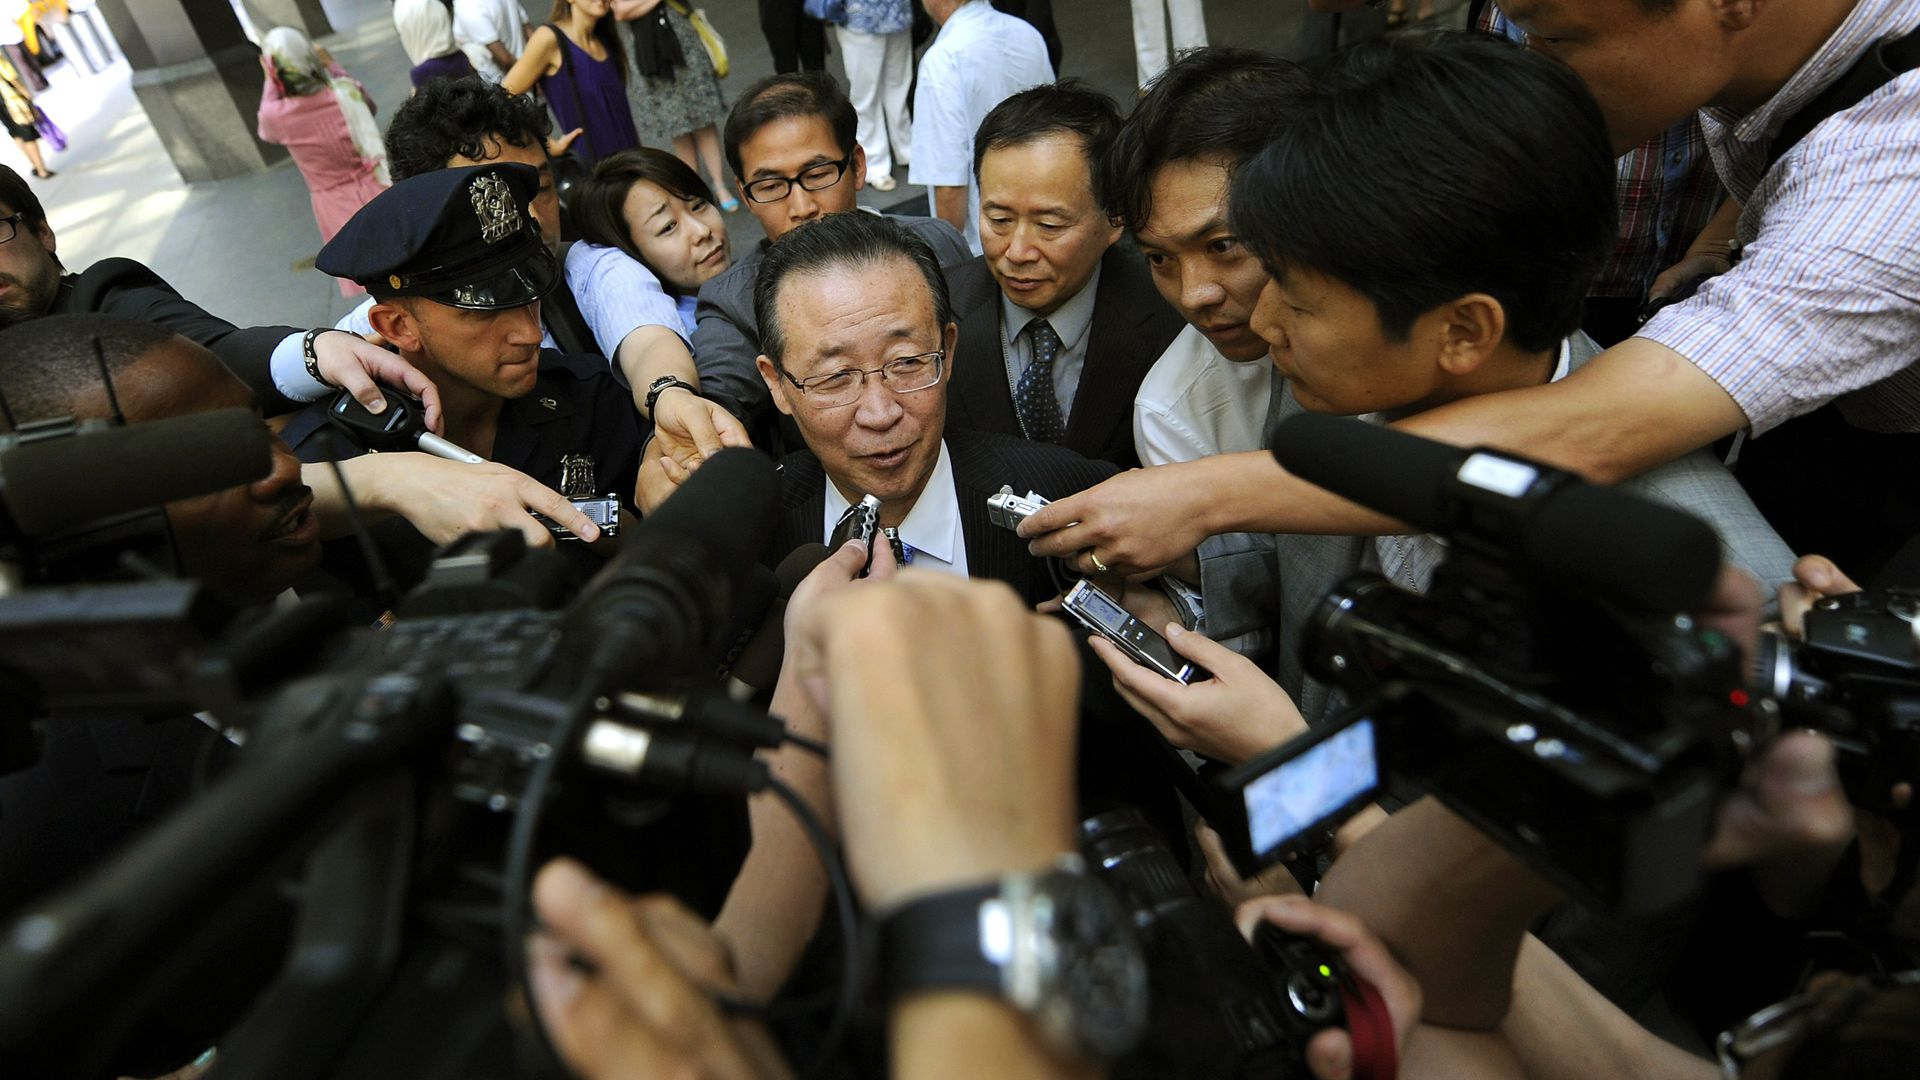 North Korean Vice Foreign Minister Kim Kye Gwan surrounded by media.